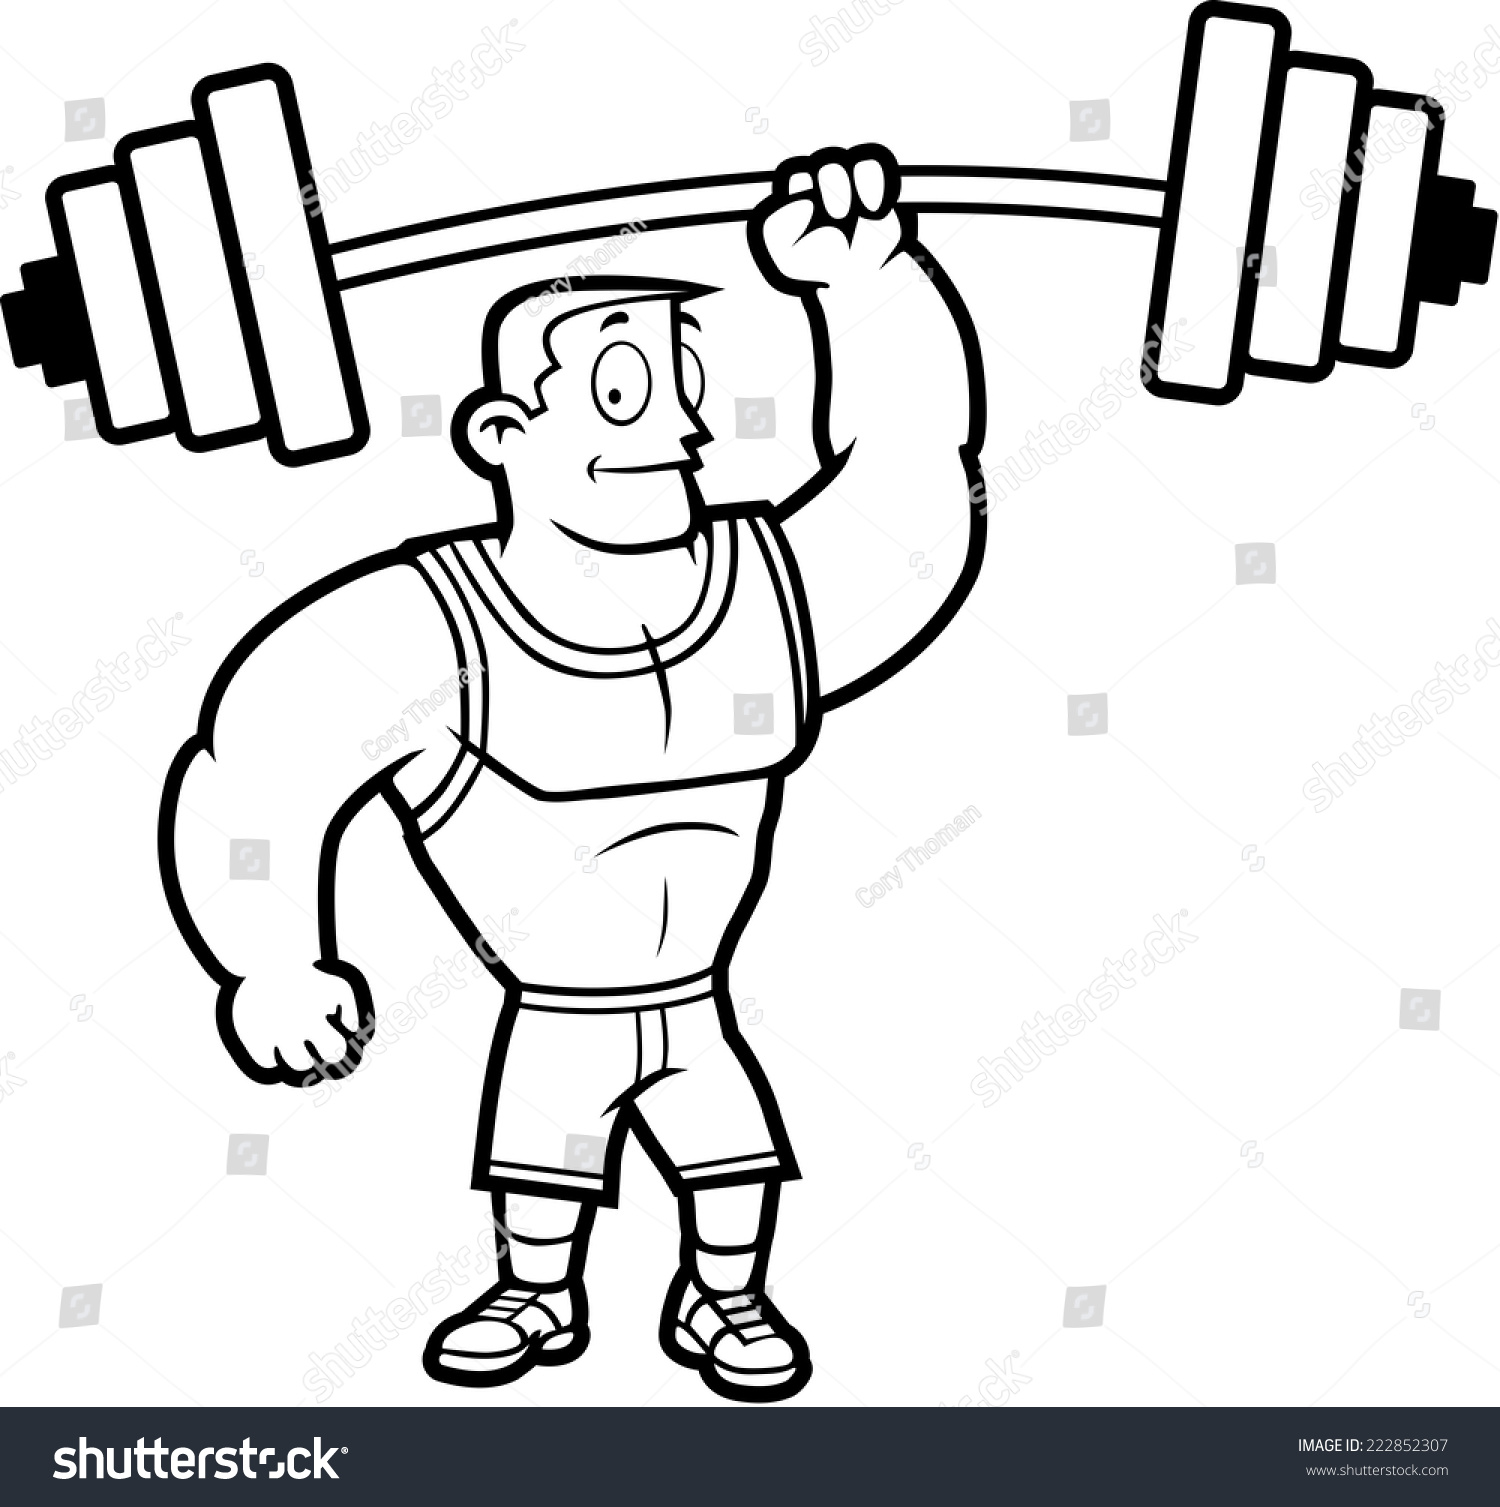 Lifting dating site